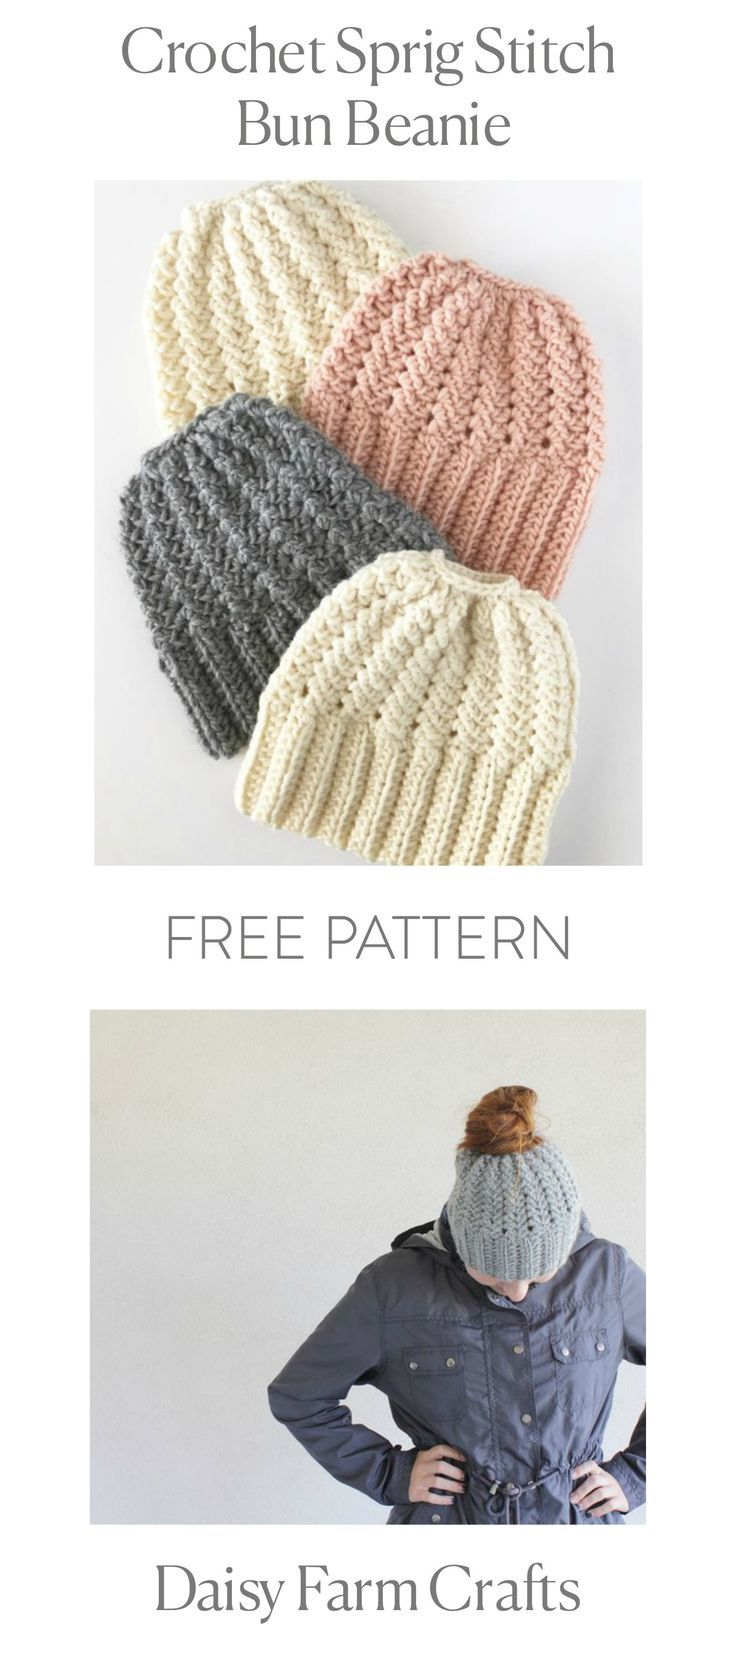 FREE PATTERN - Crochet Sprig Stitch Bun Beanie | Crochet anyone ...